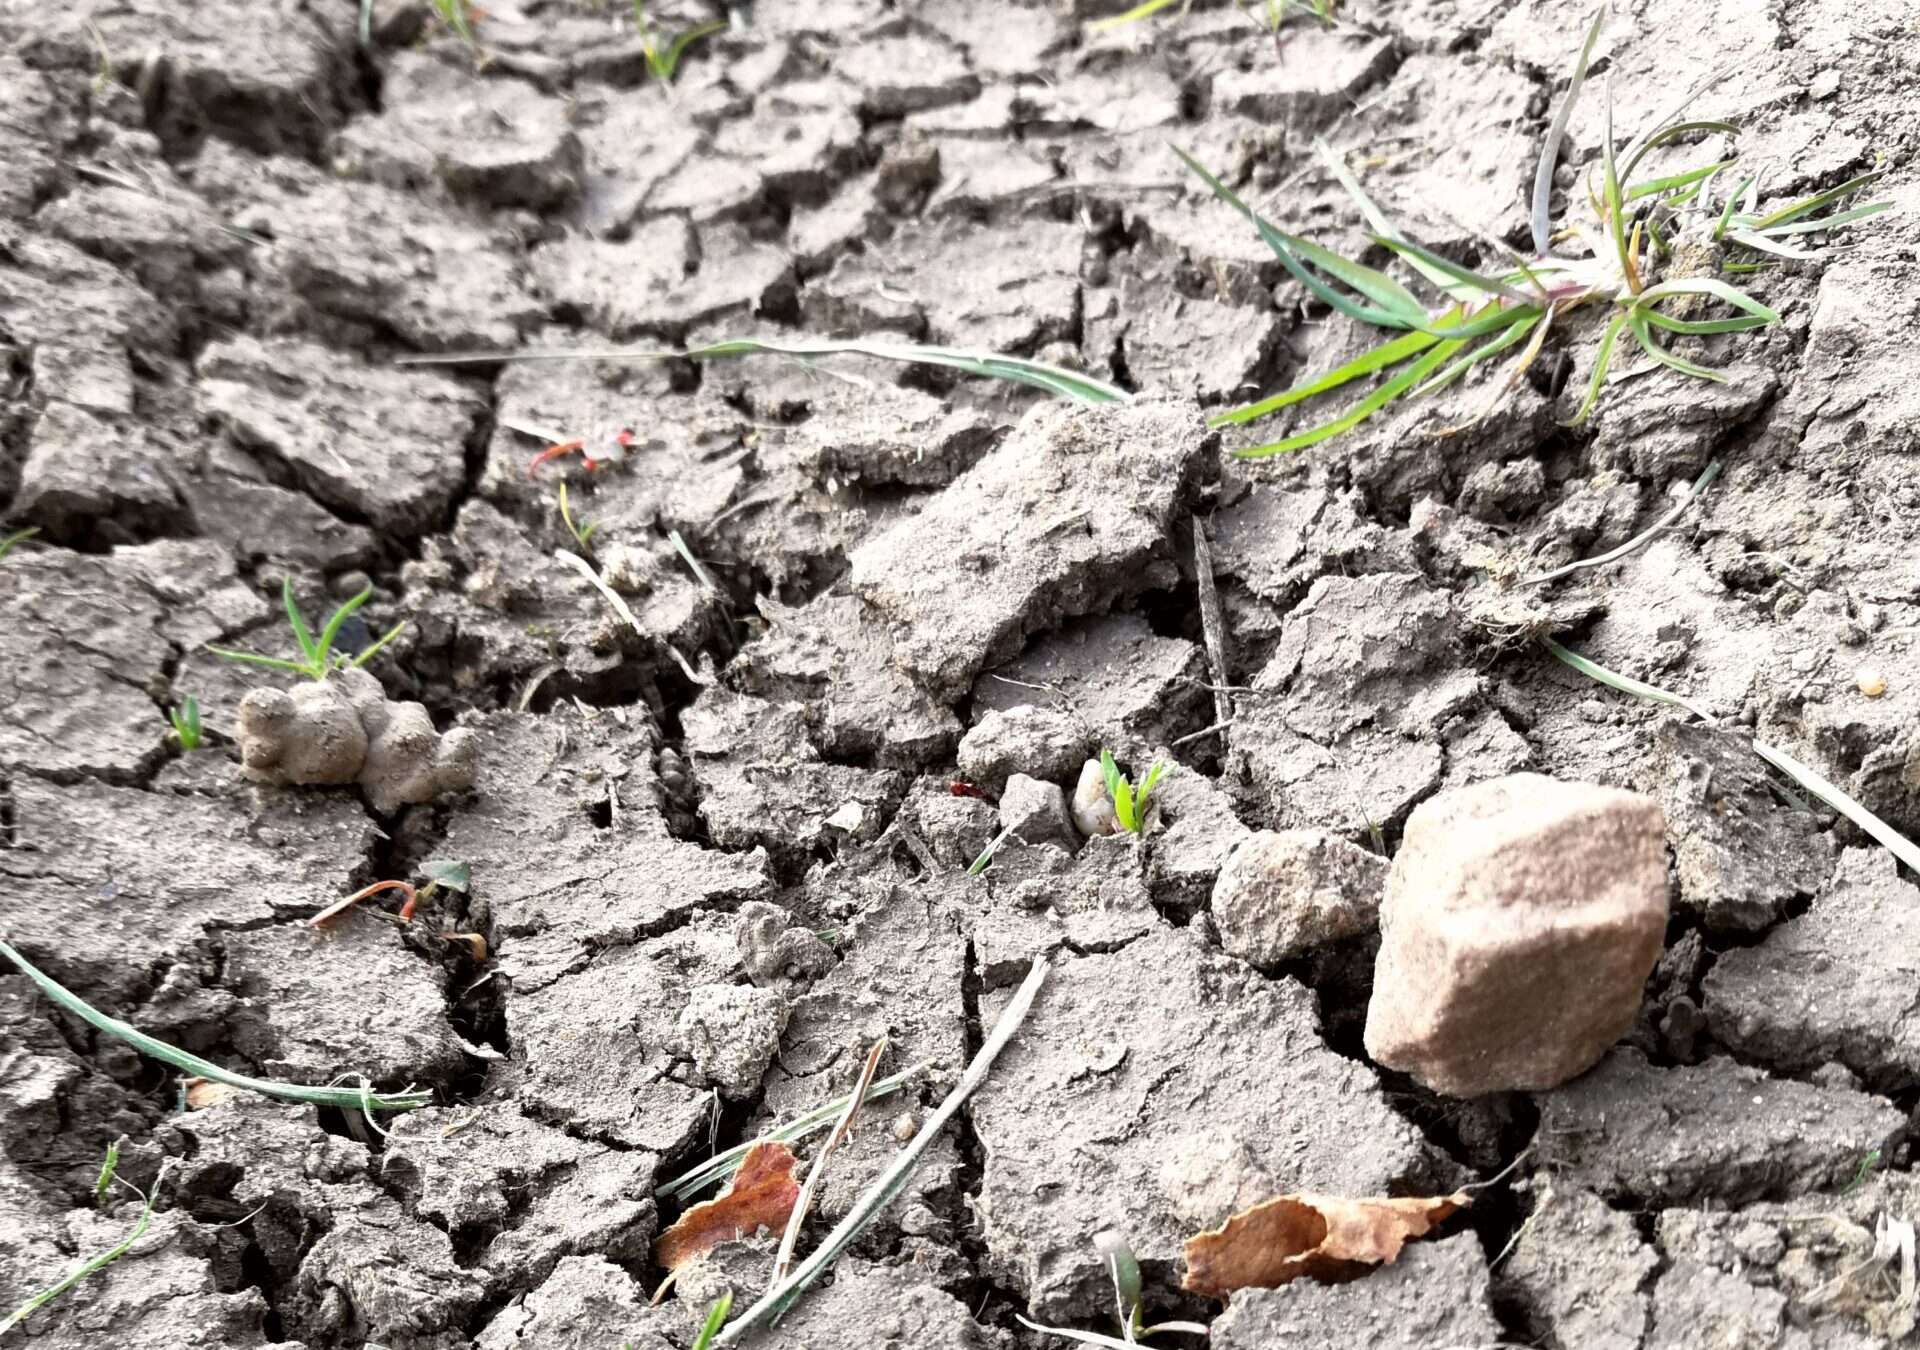 Grazing deficits are common as this year's spring is too dry and cold for optimal grass growth.